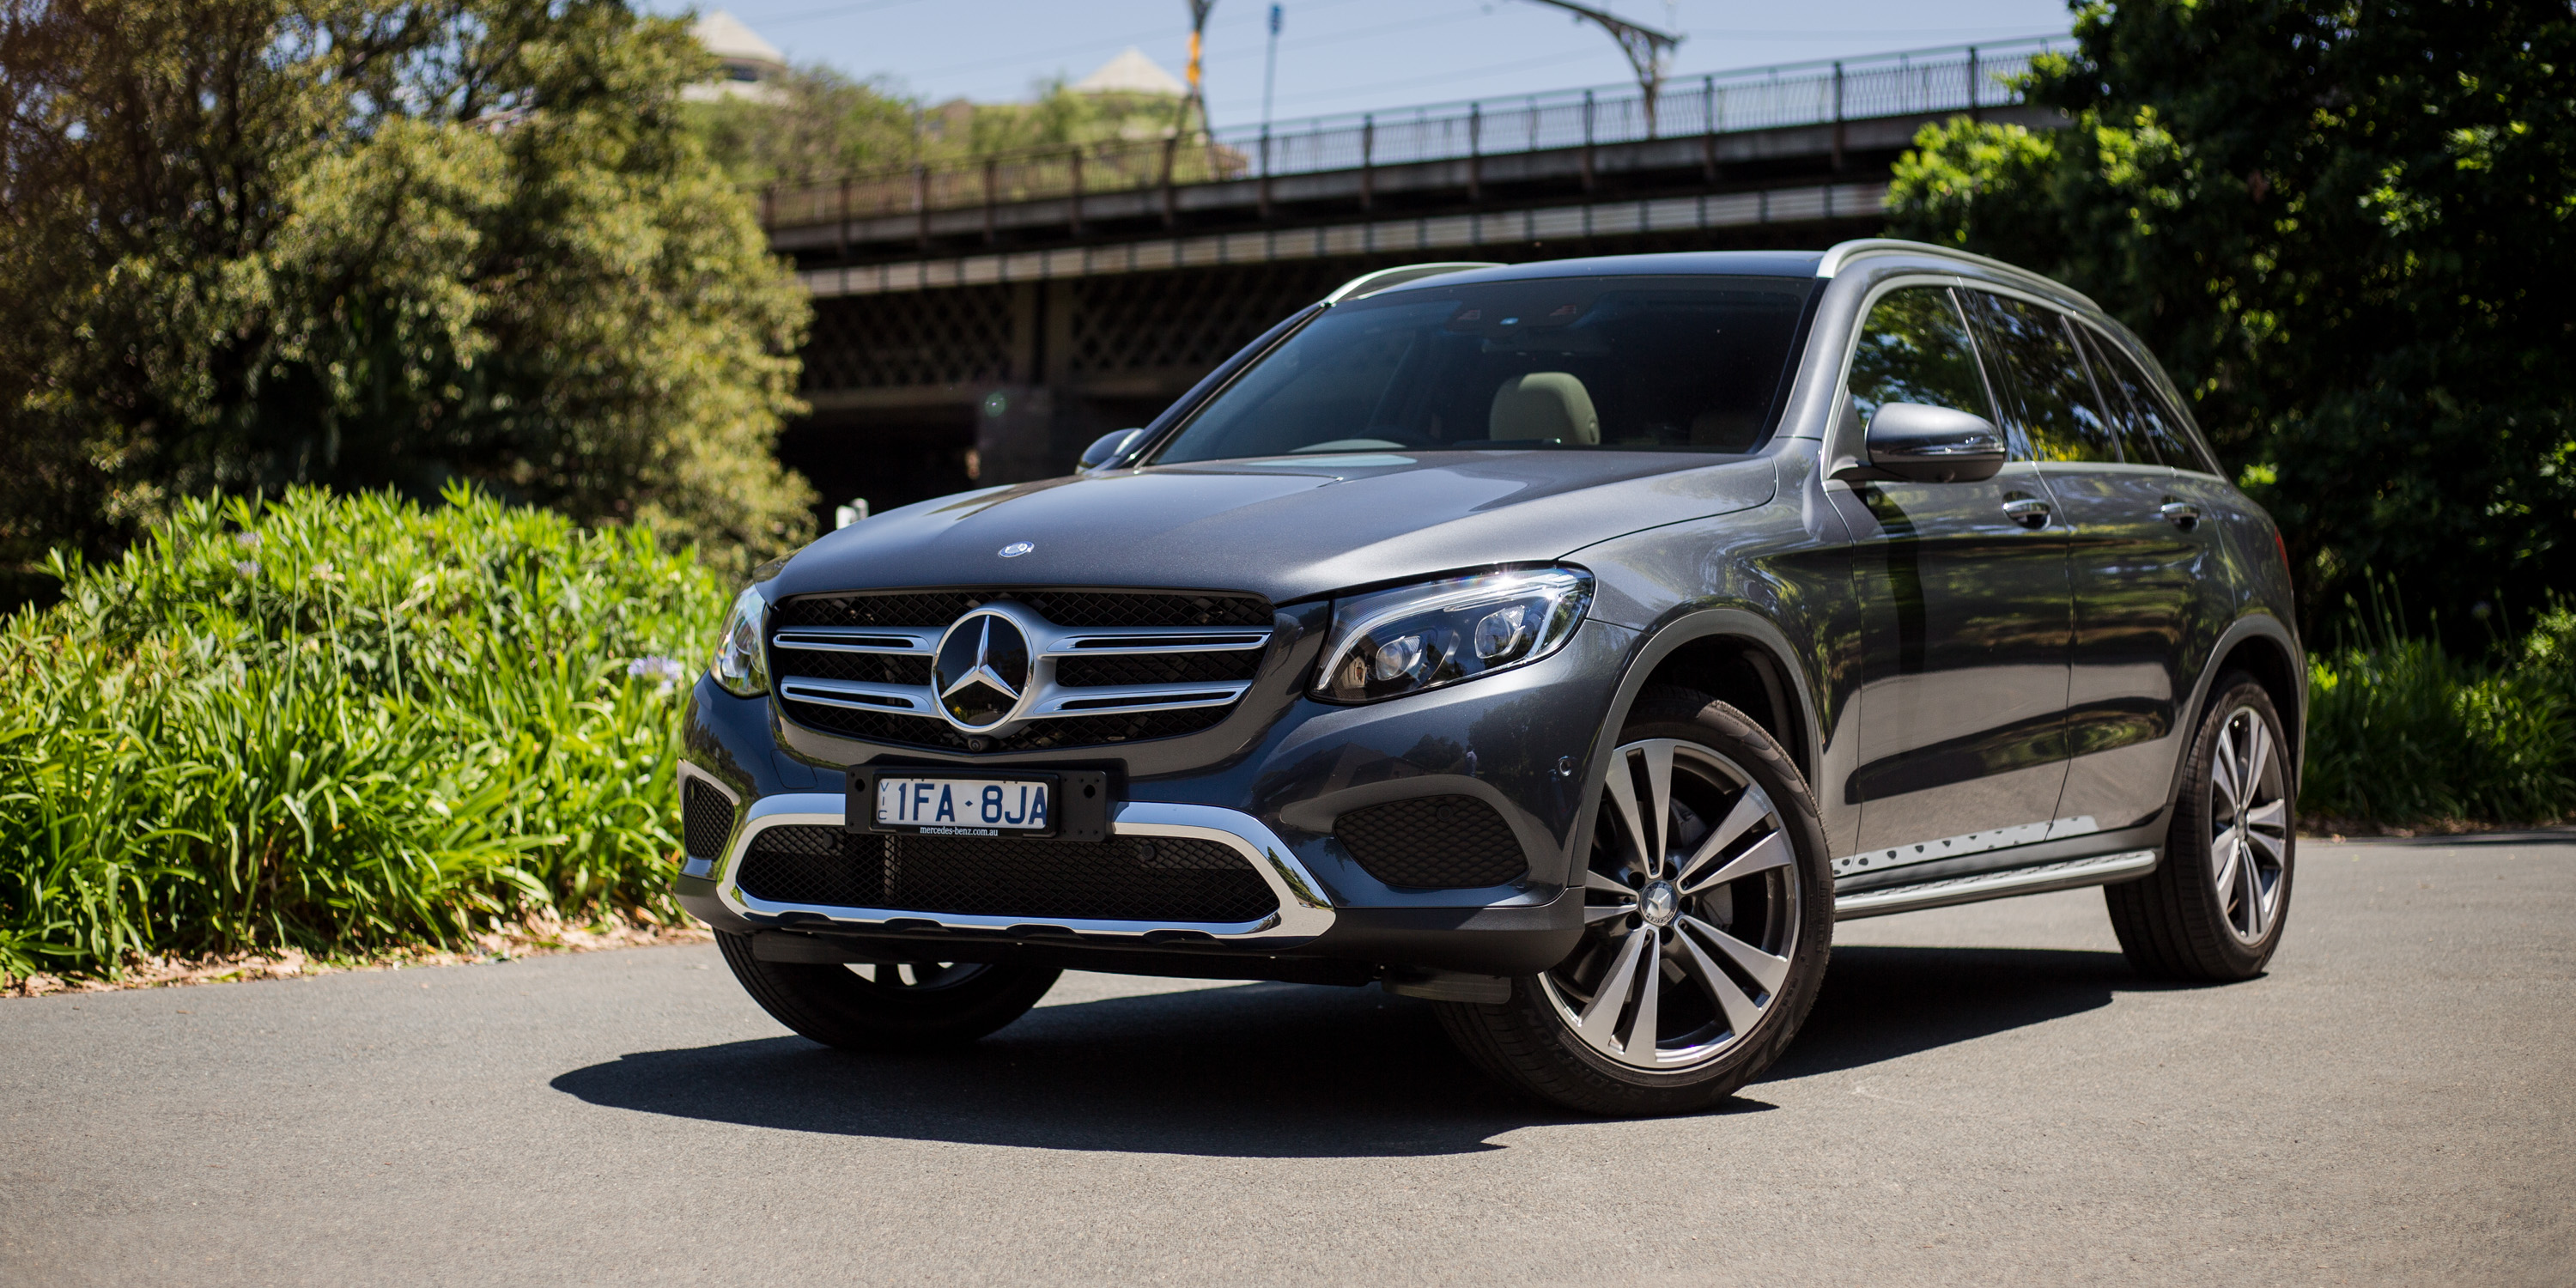 2016 mercedes benz glc review caradvice for Mercedes benz in annapolis